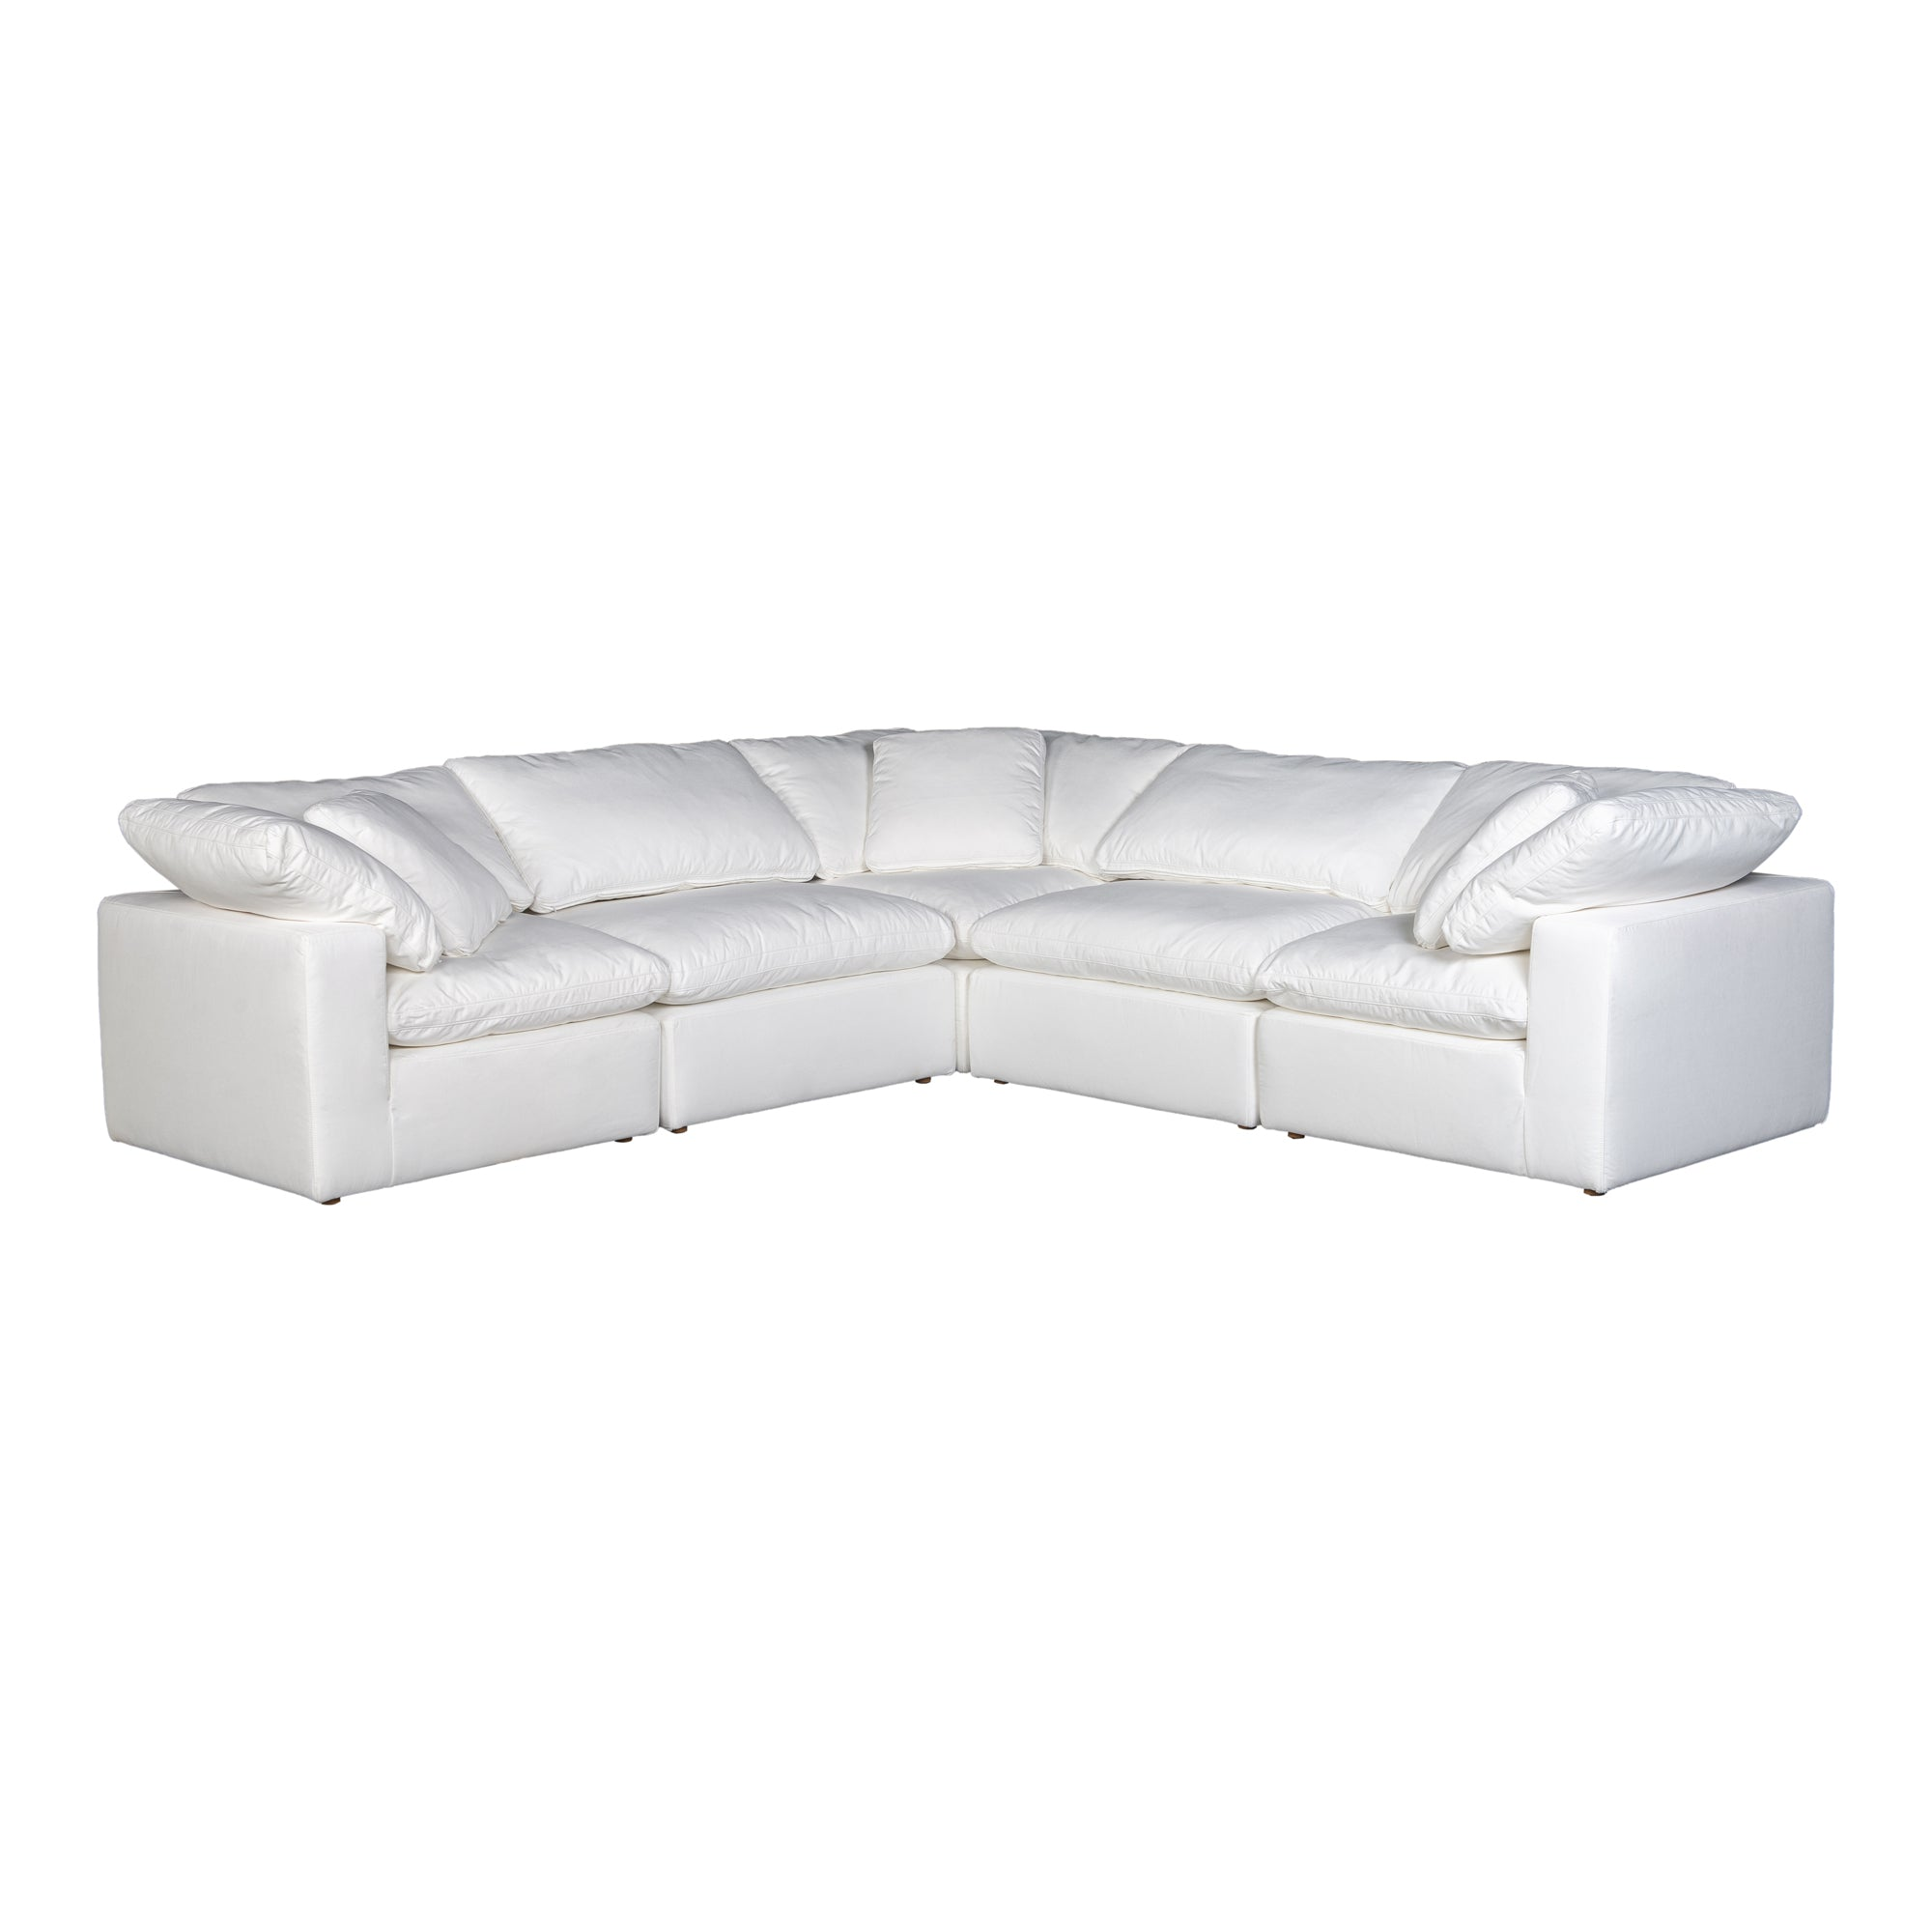 Terra condo classic l modular sectional, white - Tops-Dress